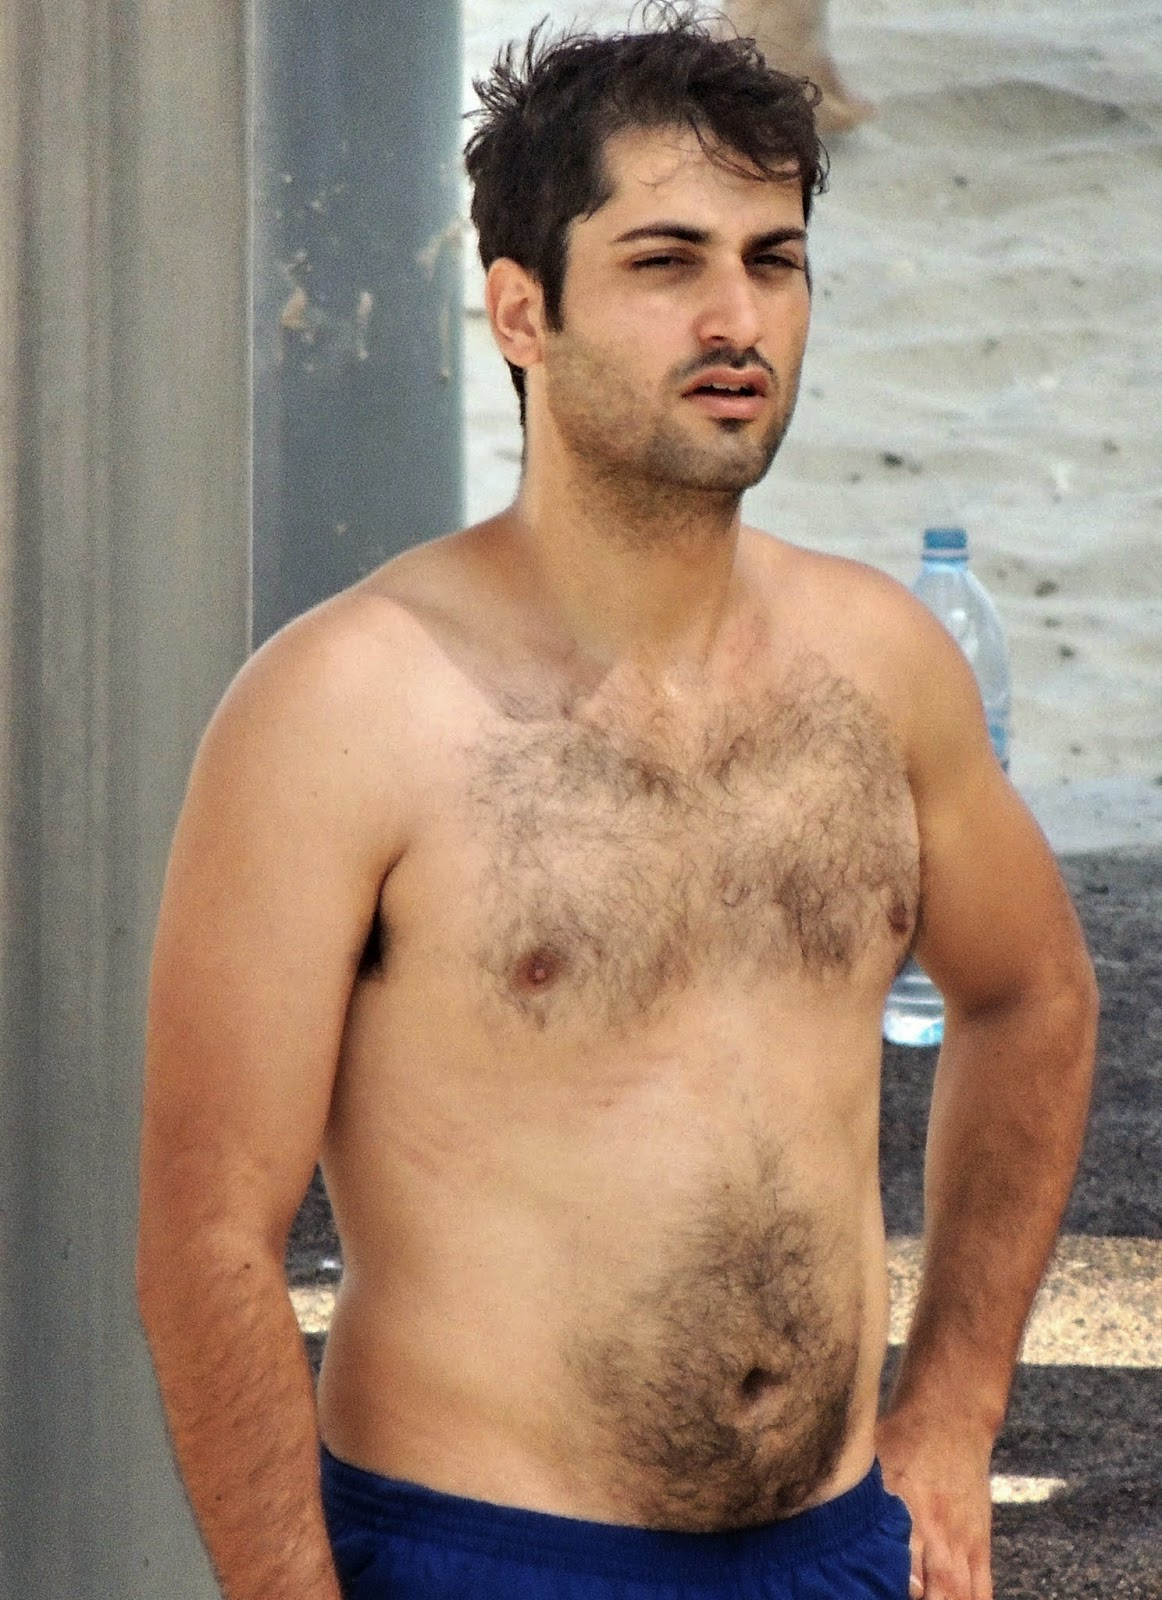 A hairy chest i want